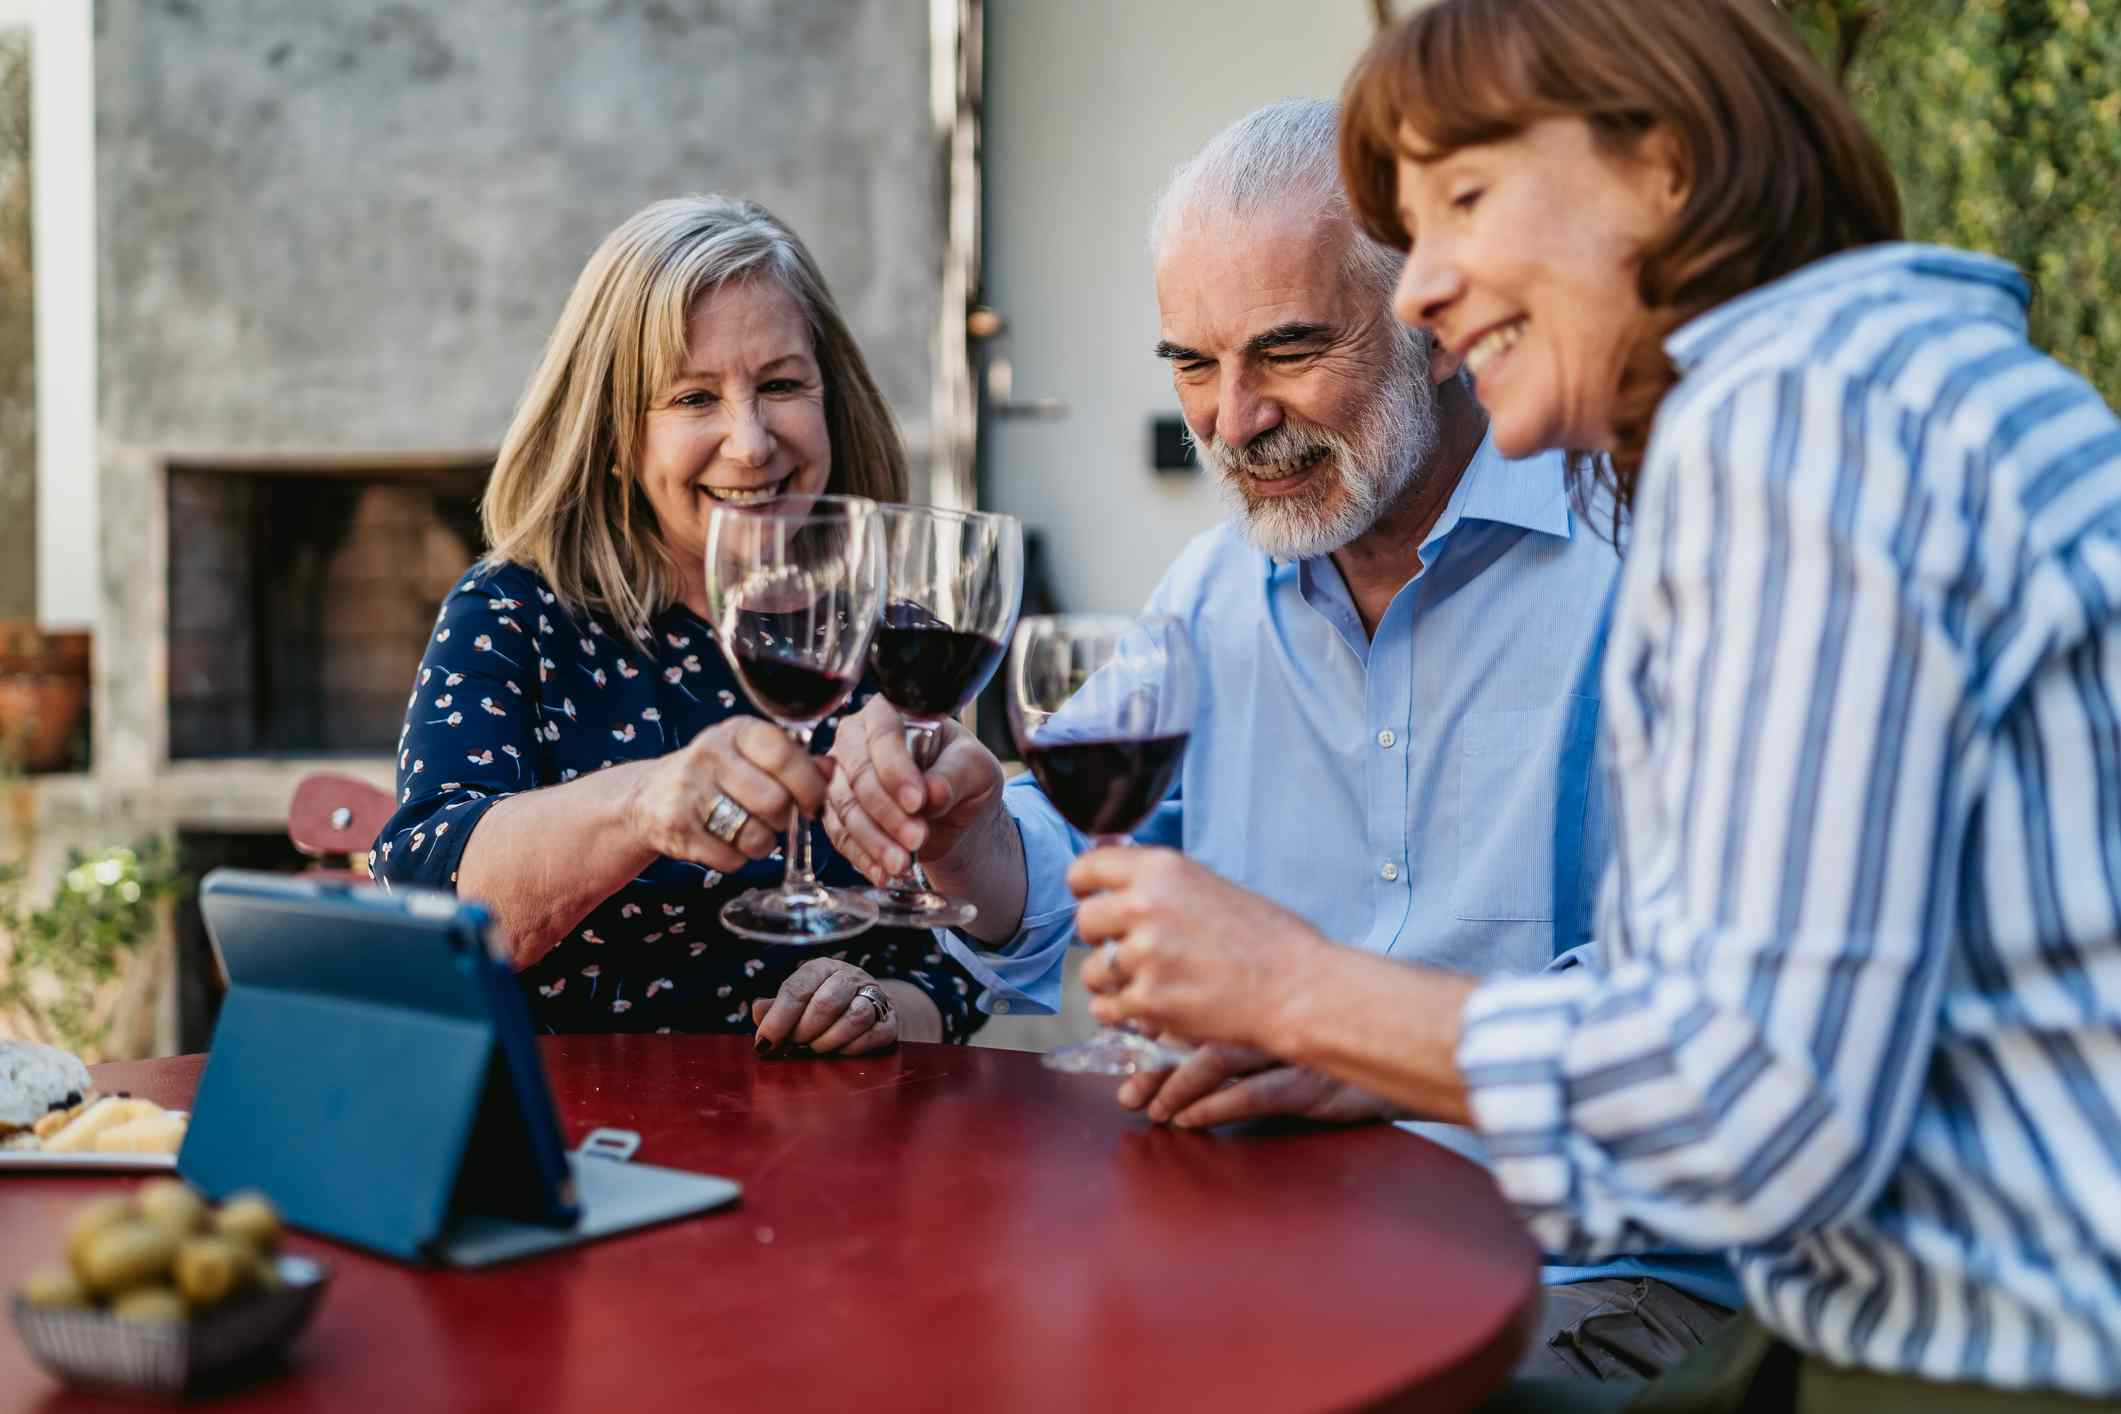 friends toasting with a glass of wine while watching video on a tablet